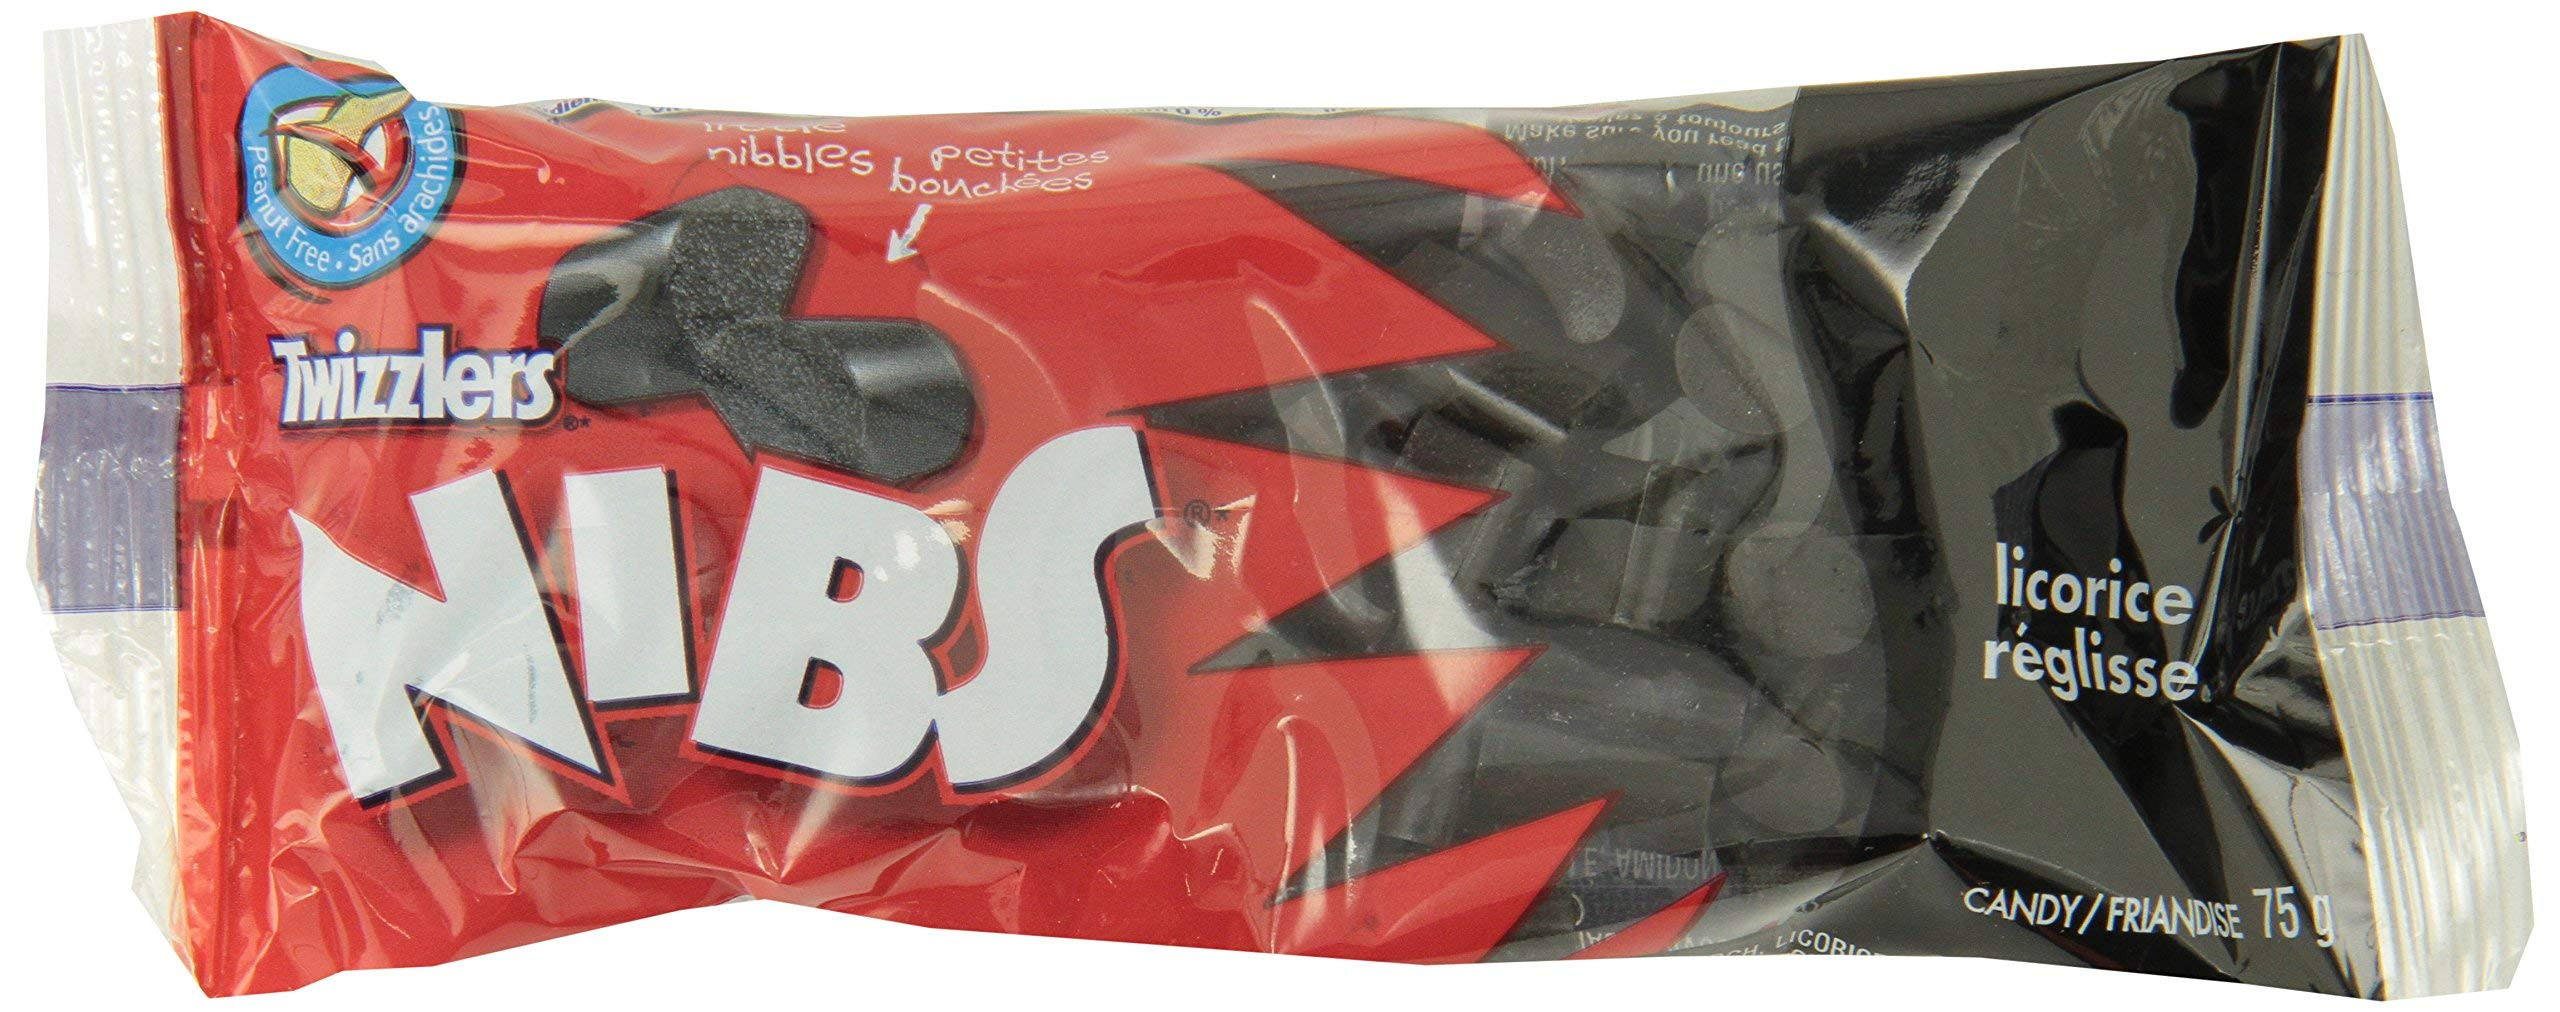 TWIZZLERS Black Licorice Candy, Nibs, 24 Count